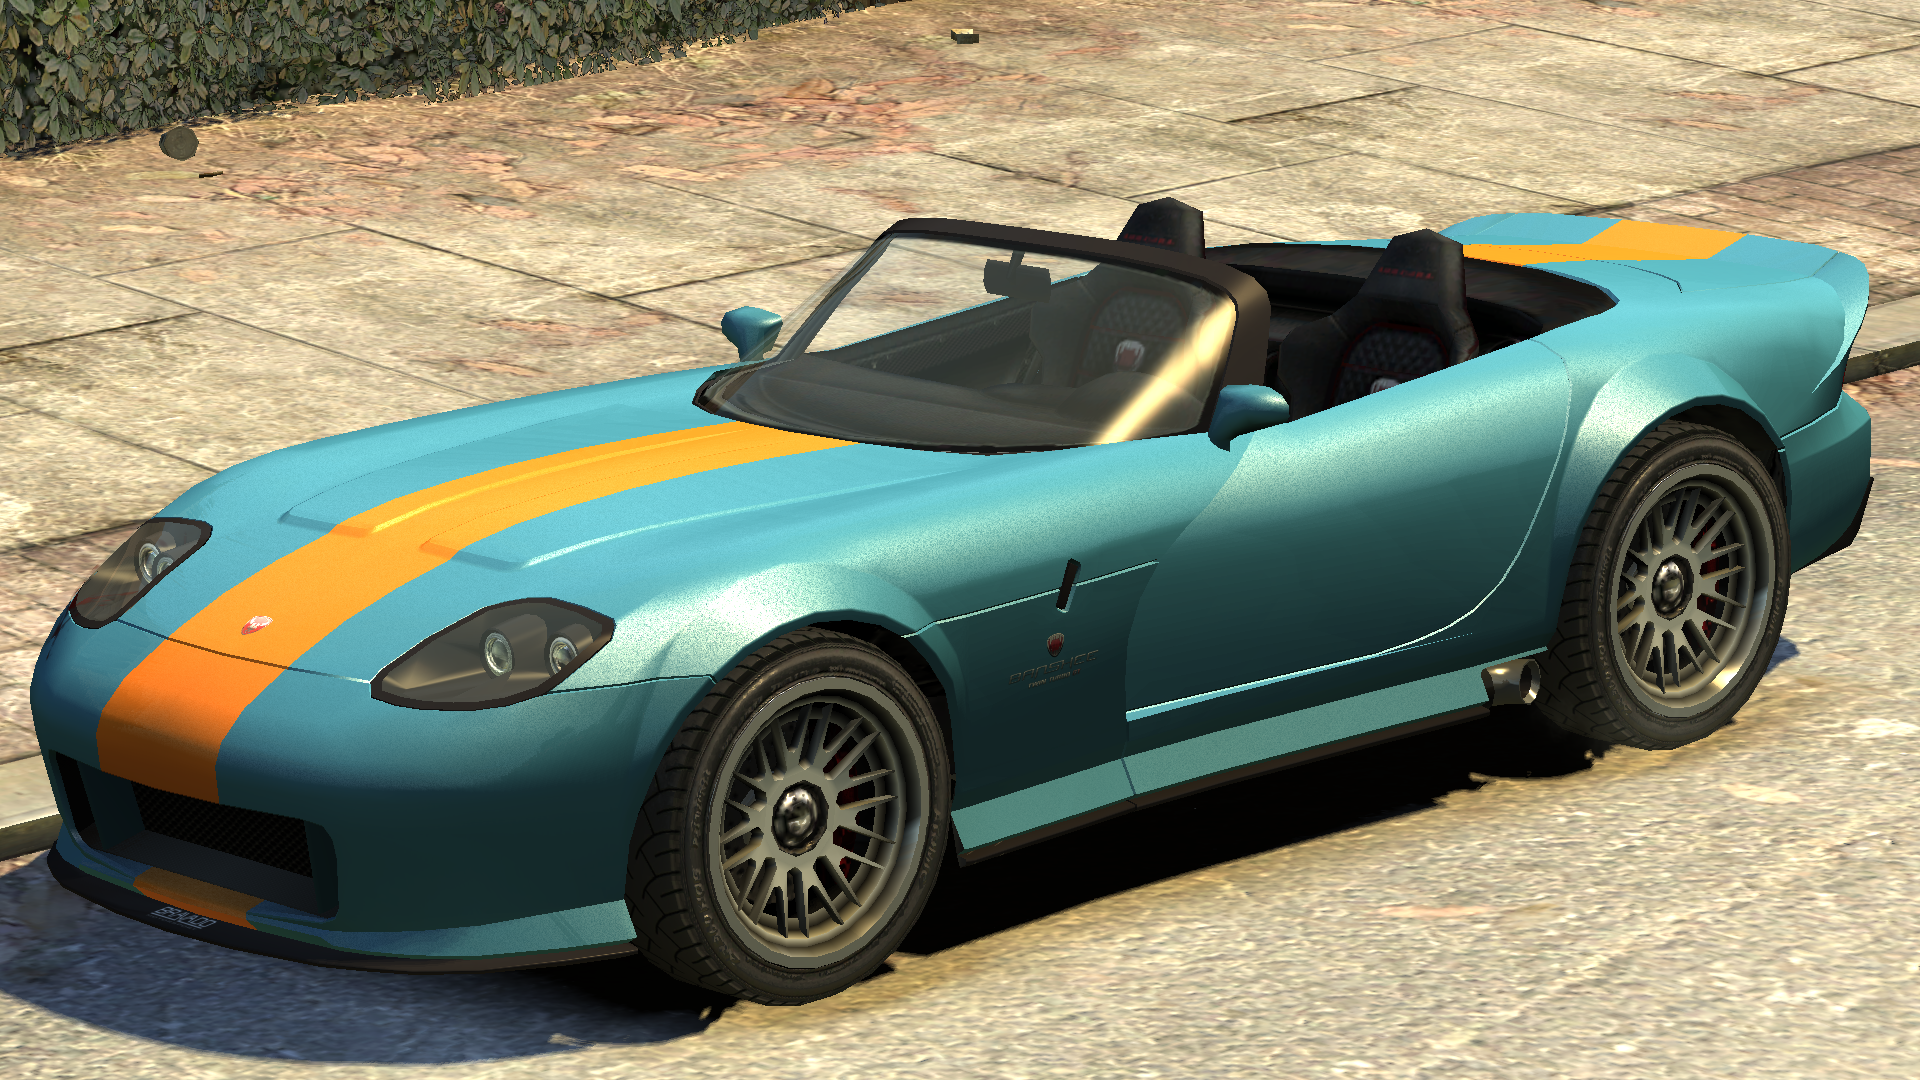 Vehicles in Grand Theft Auto IV | GTA Wiki | FANDOM powered by Wikia